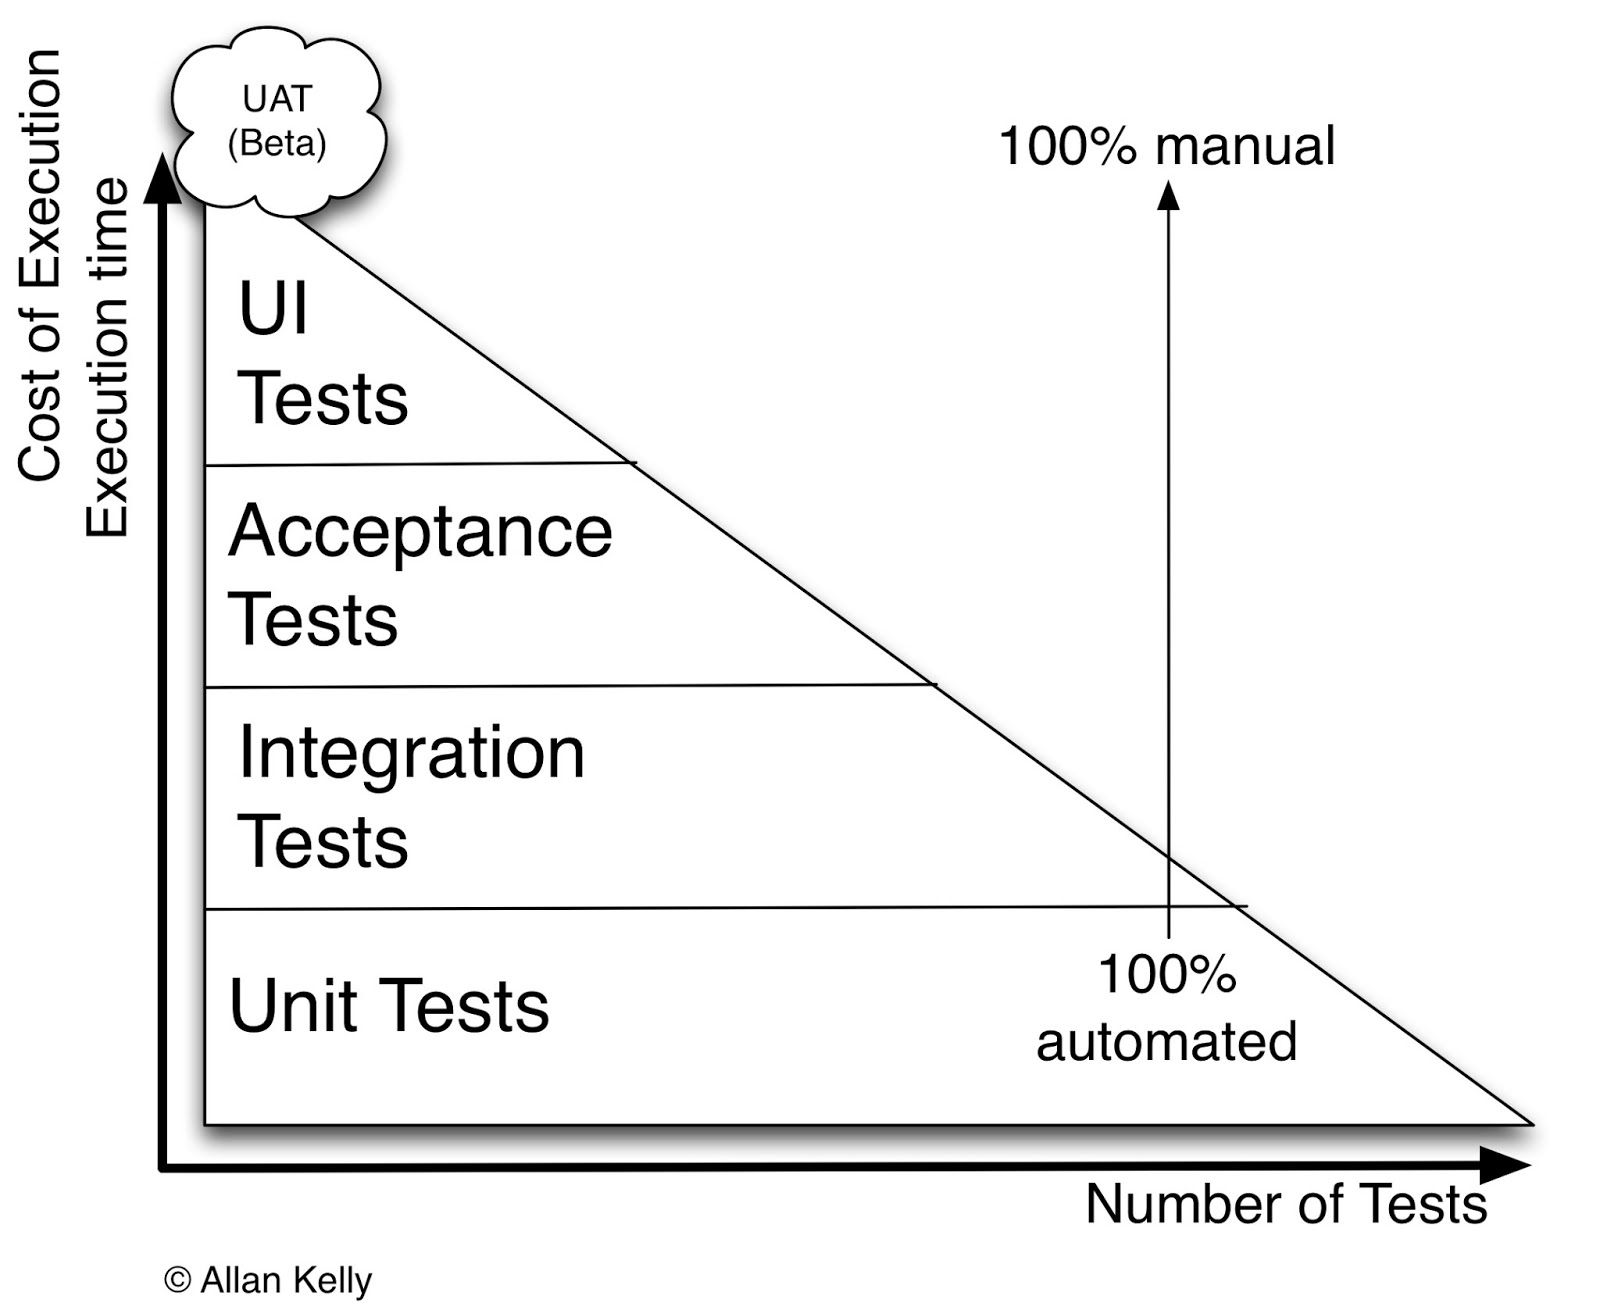 hight resolution of uat diagram